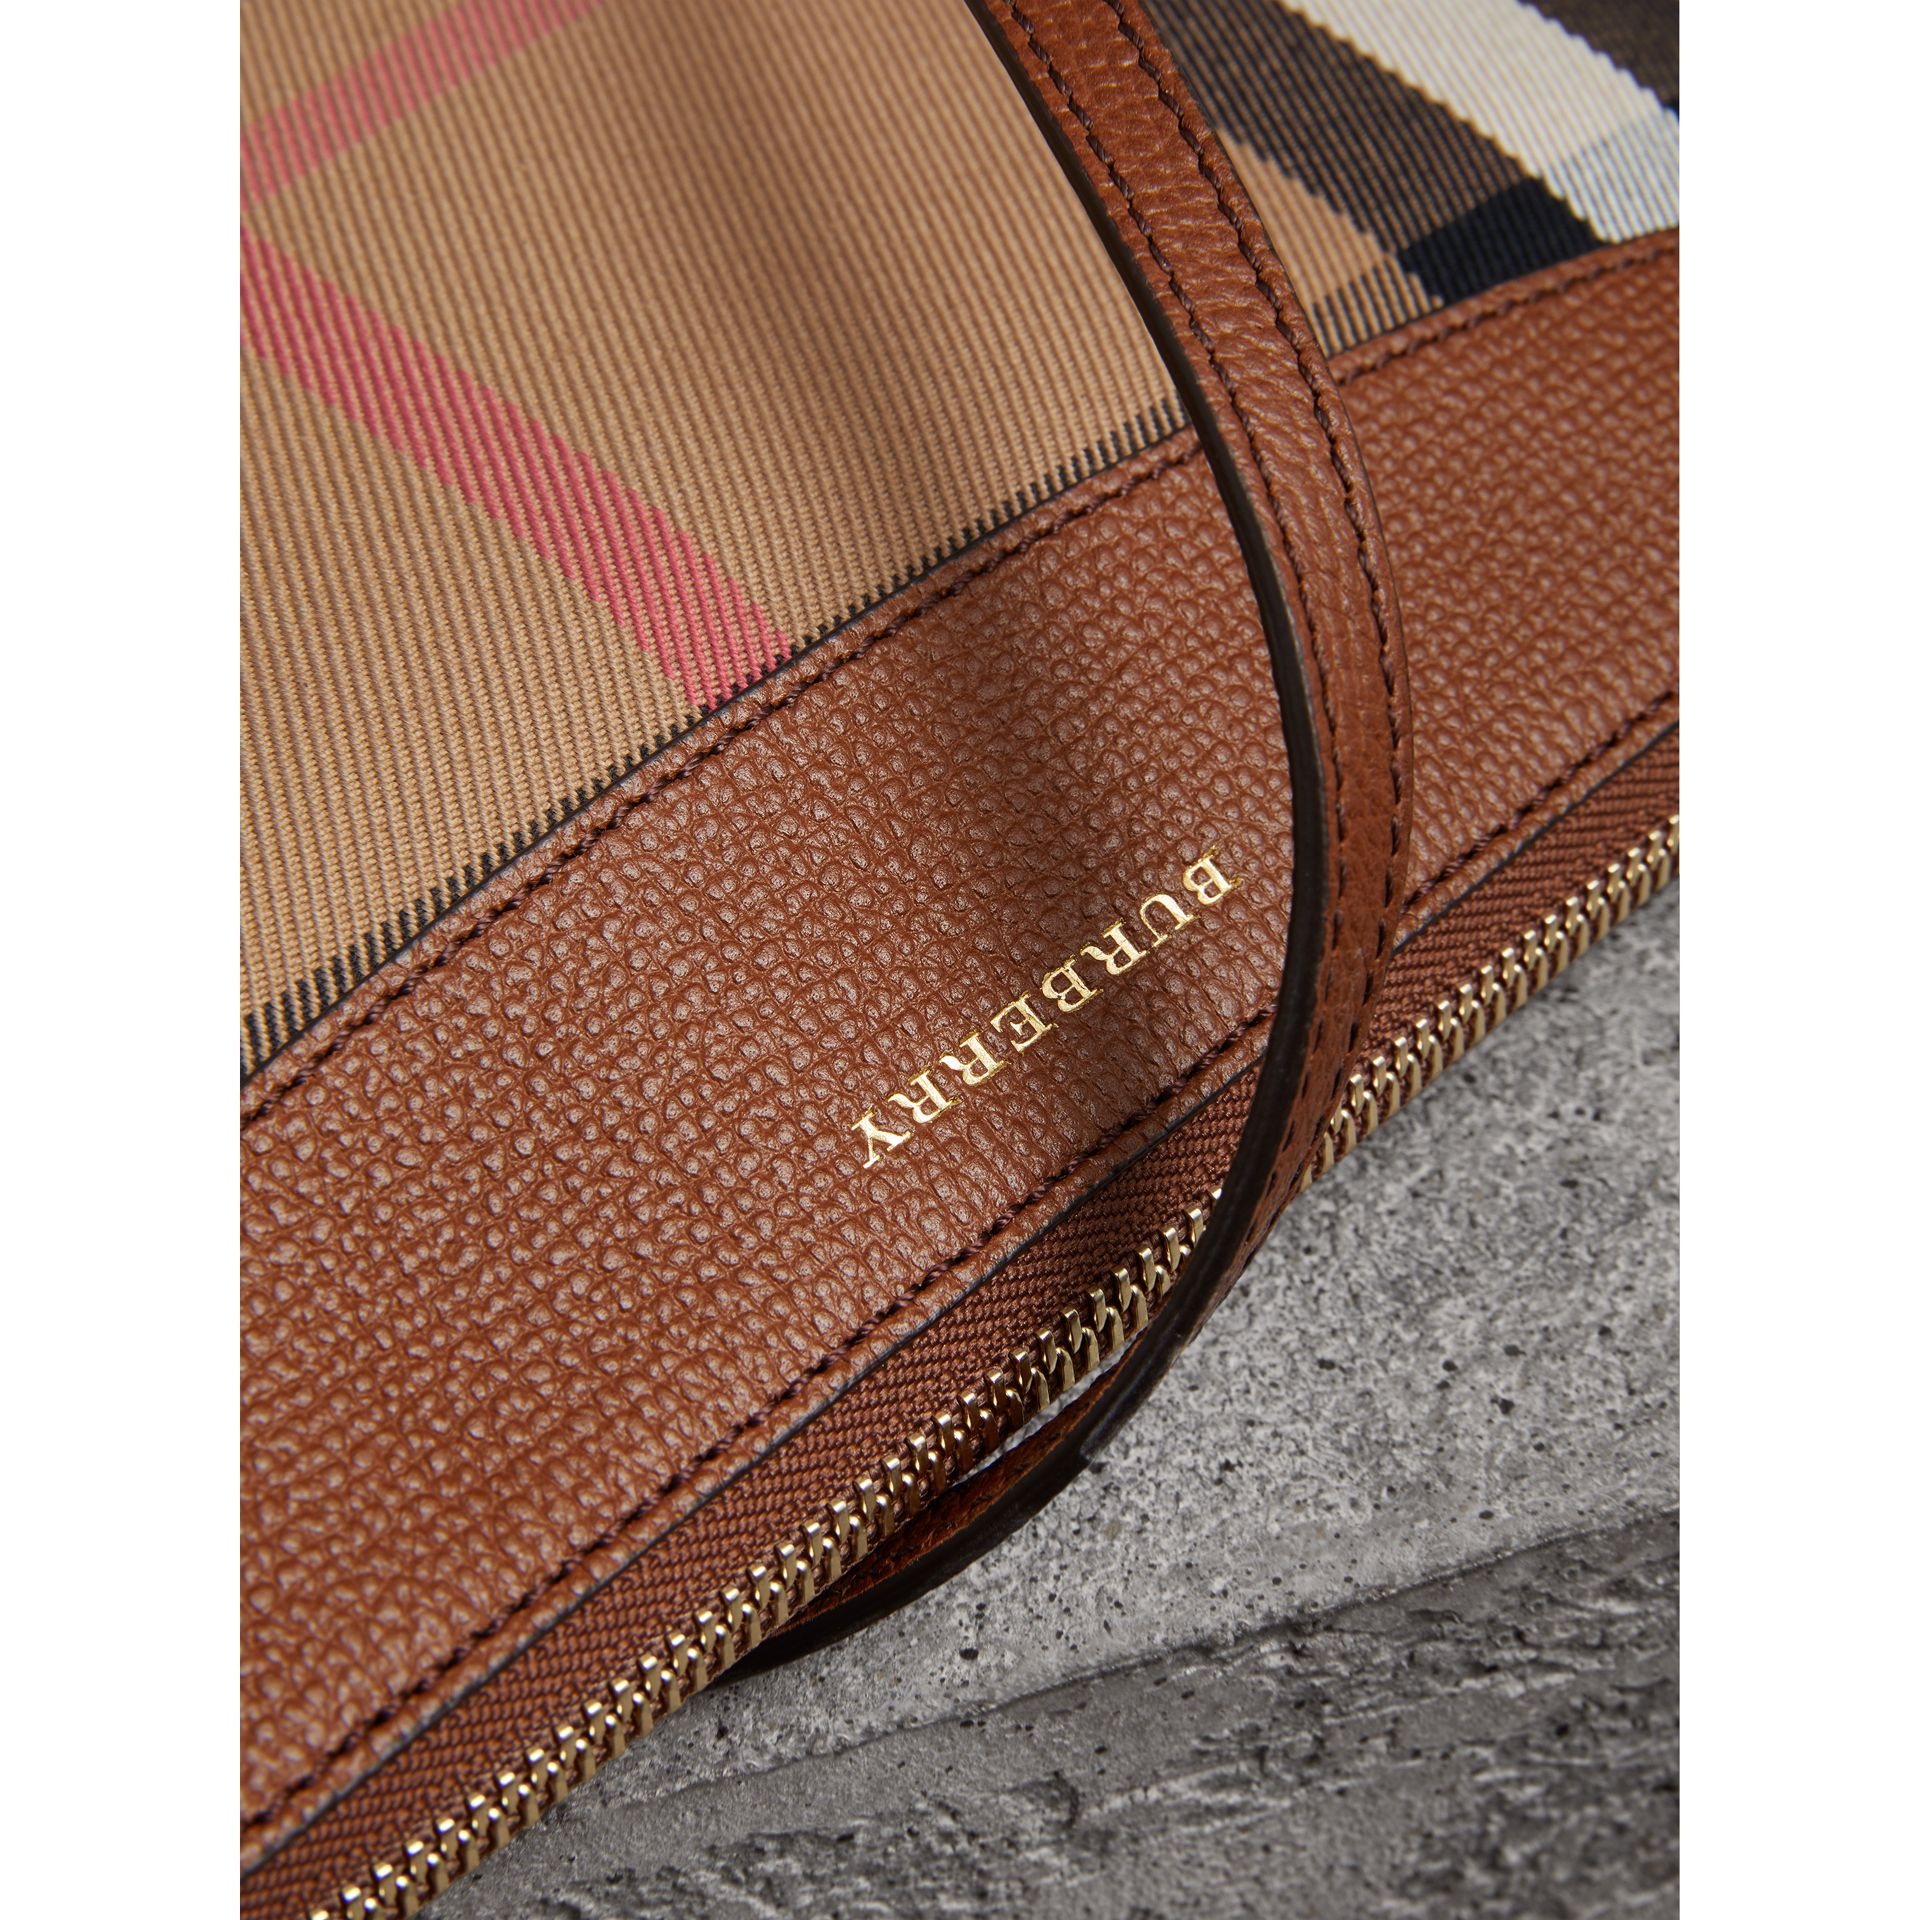 House Check and Leather Clutch Bag in Tan - Women | Burberry Singapore - gallery image 1